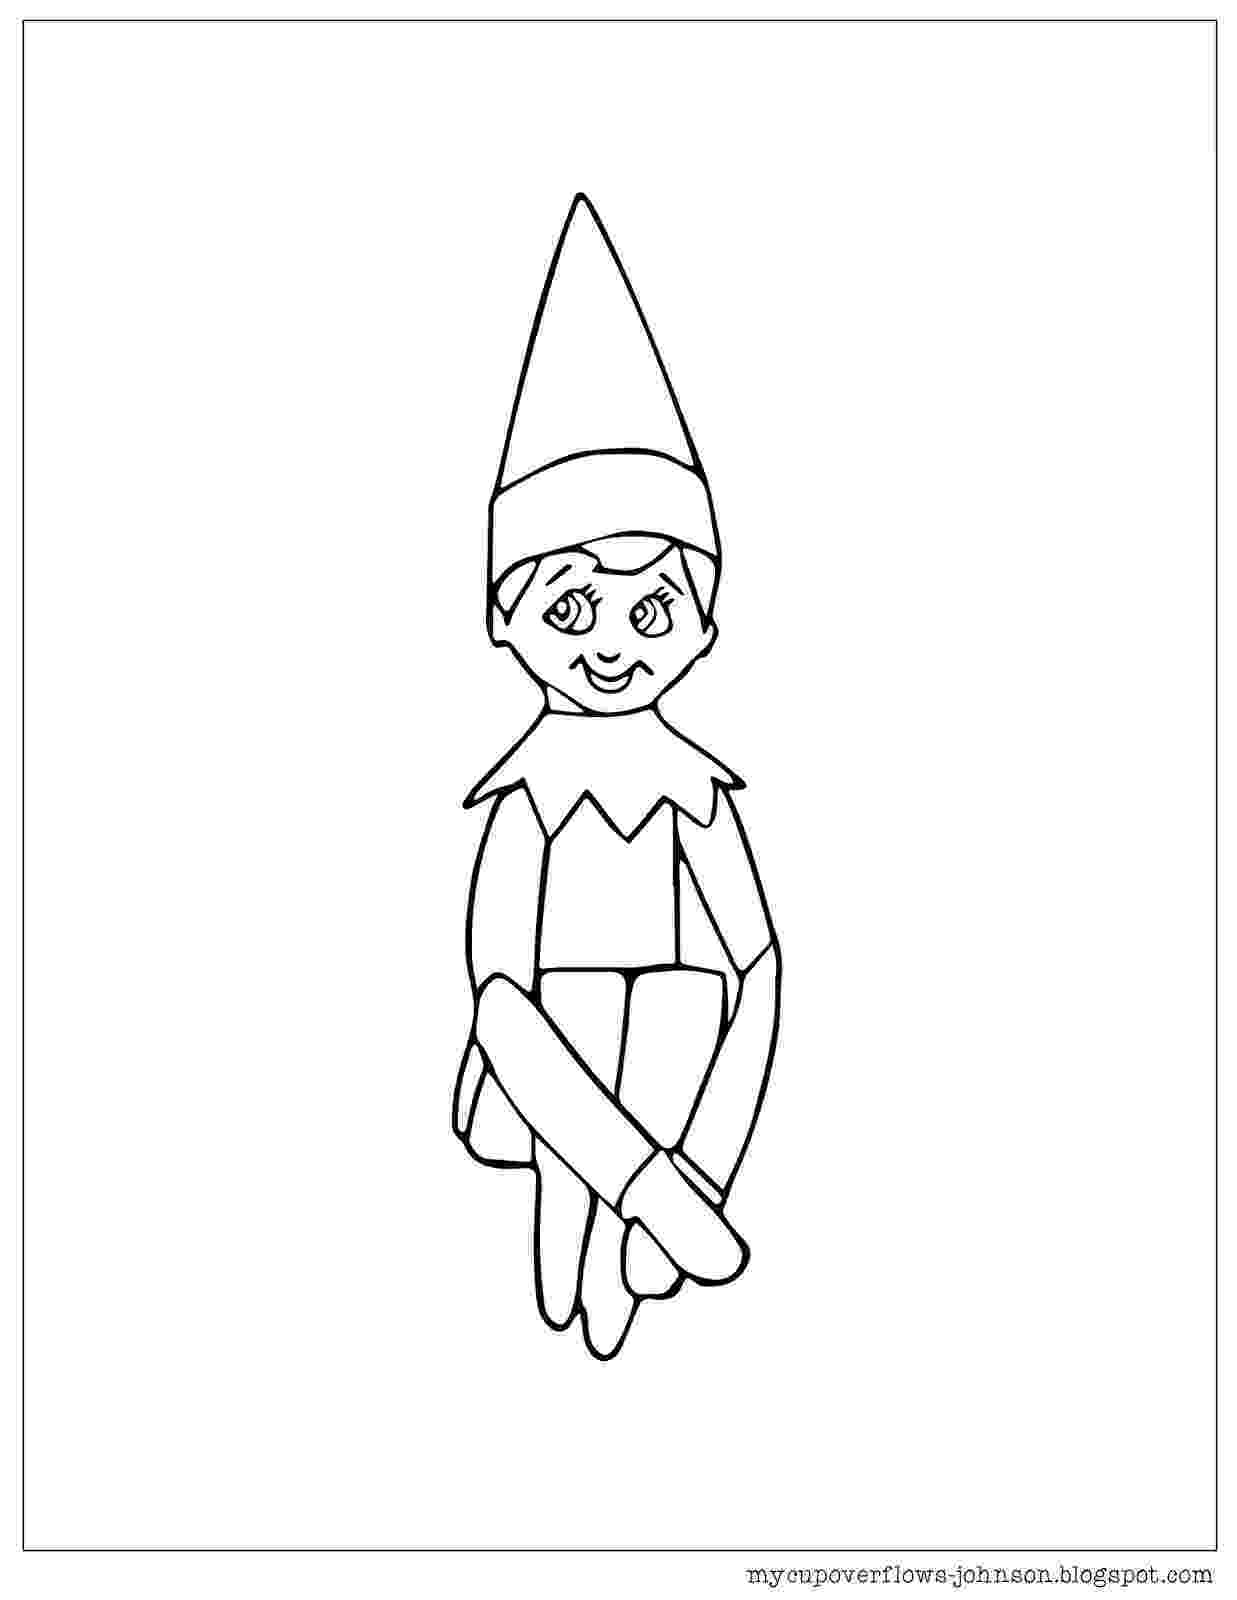 elf on shelf coloring pages free elf on the shelf coloring pages christmas coloring elf on shelf coloring pages